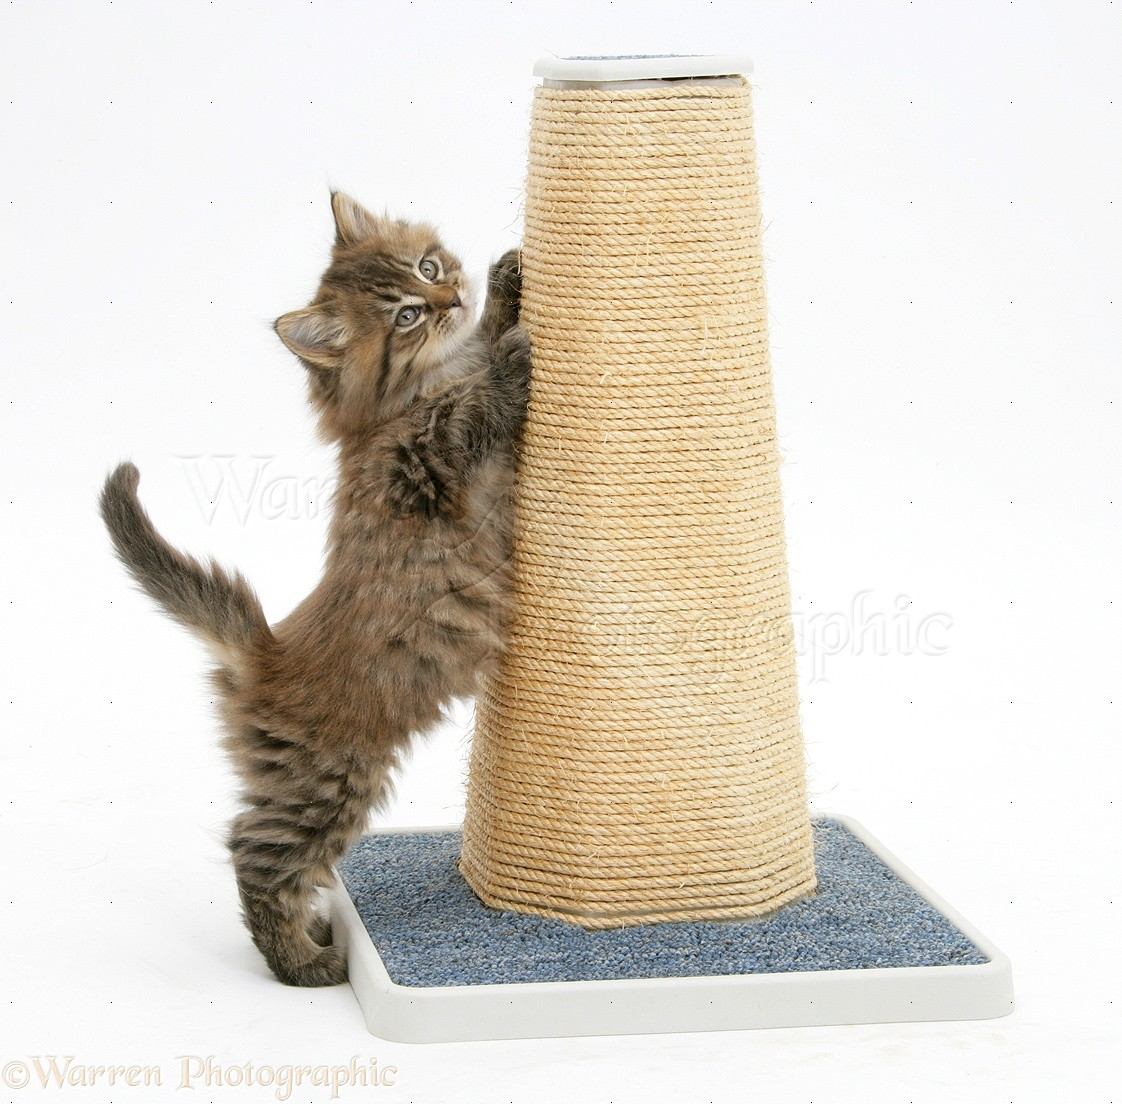 371302414714 also 3639668 furthermore Dal Maglione Al Cesto Per Il Pet also Watch furthermore Great Cat Products. on diy cat scratching post